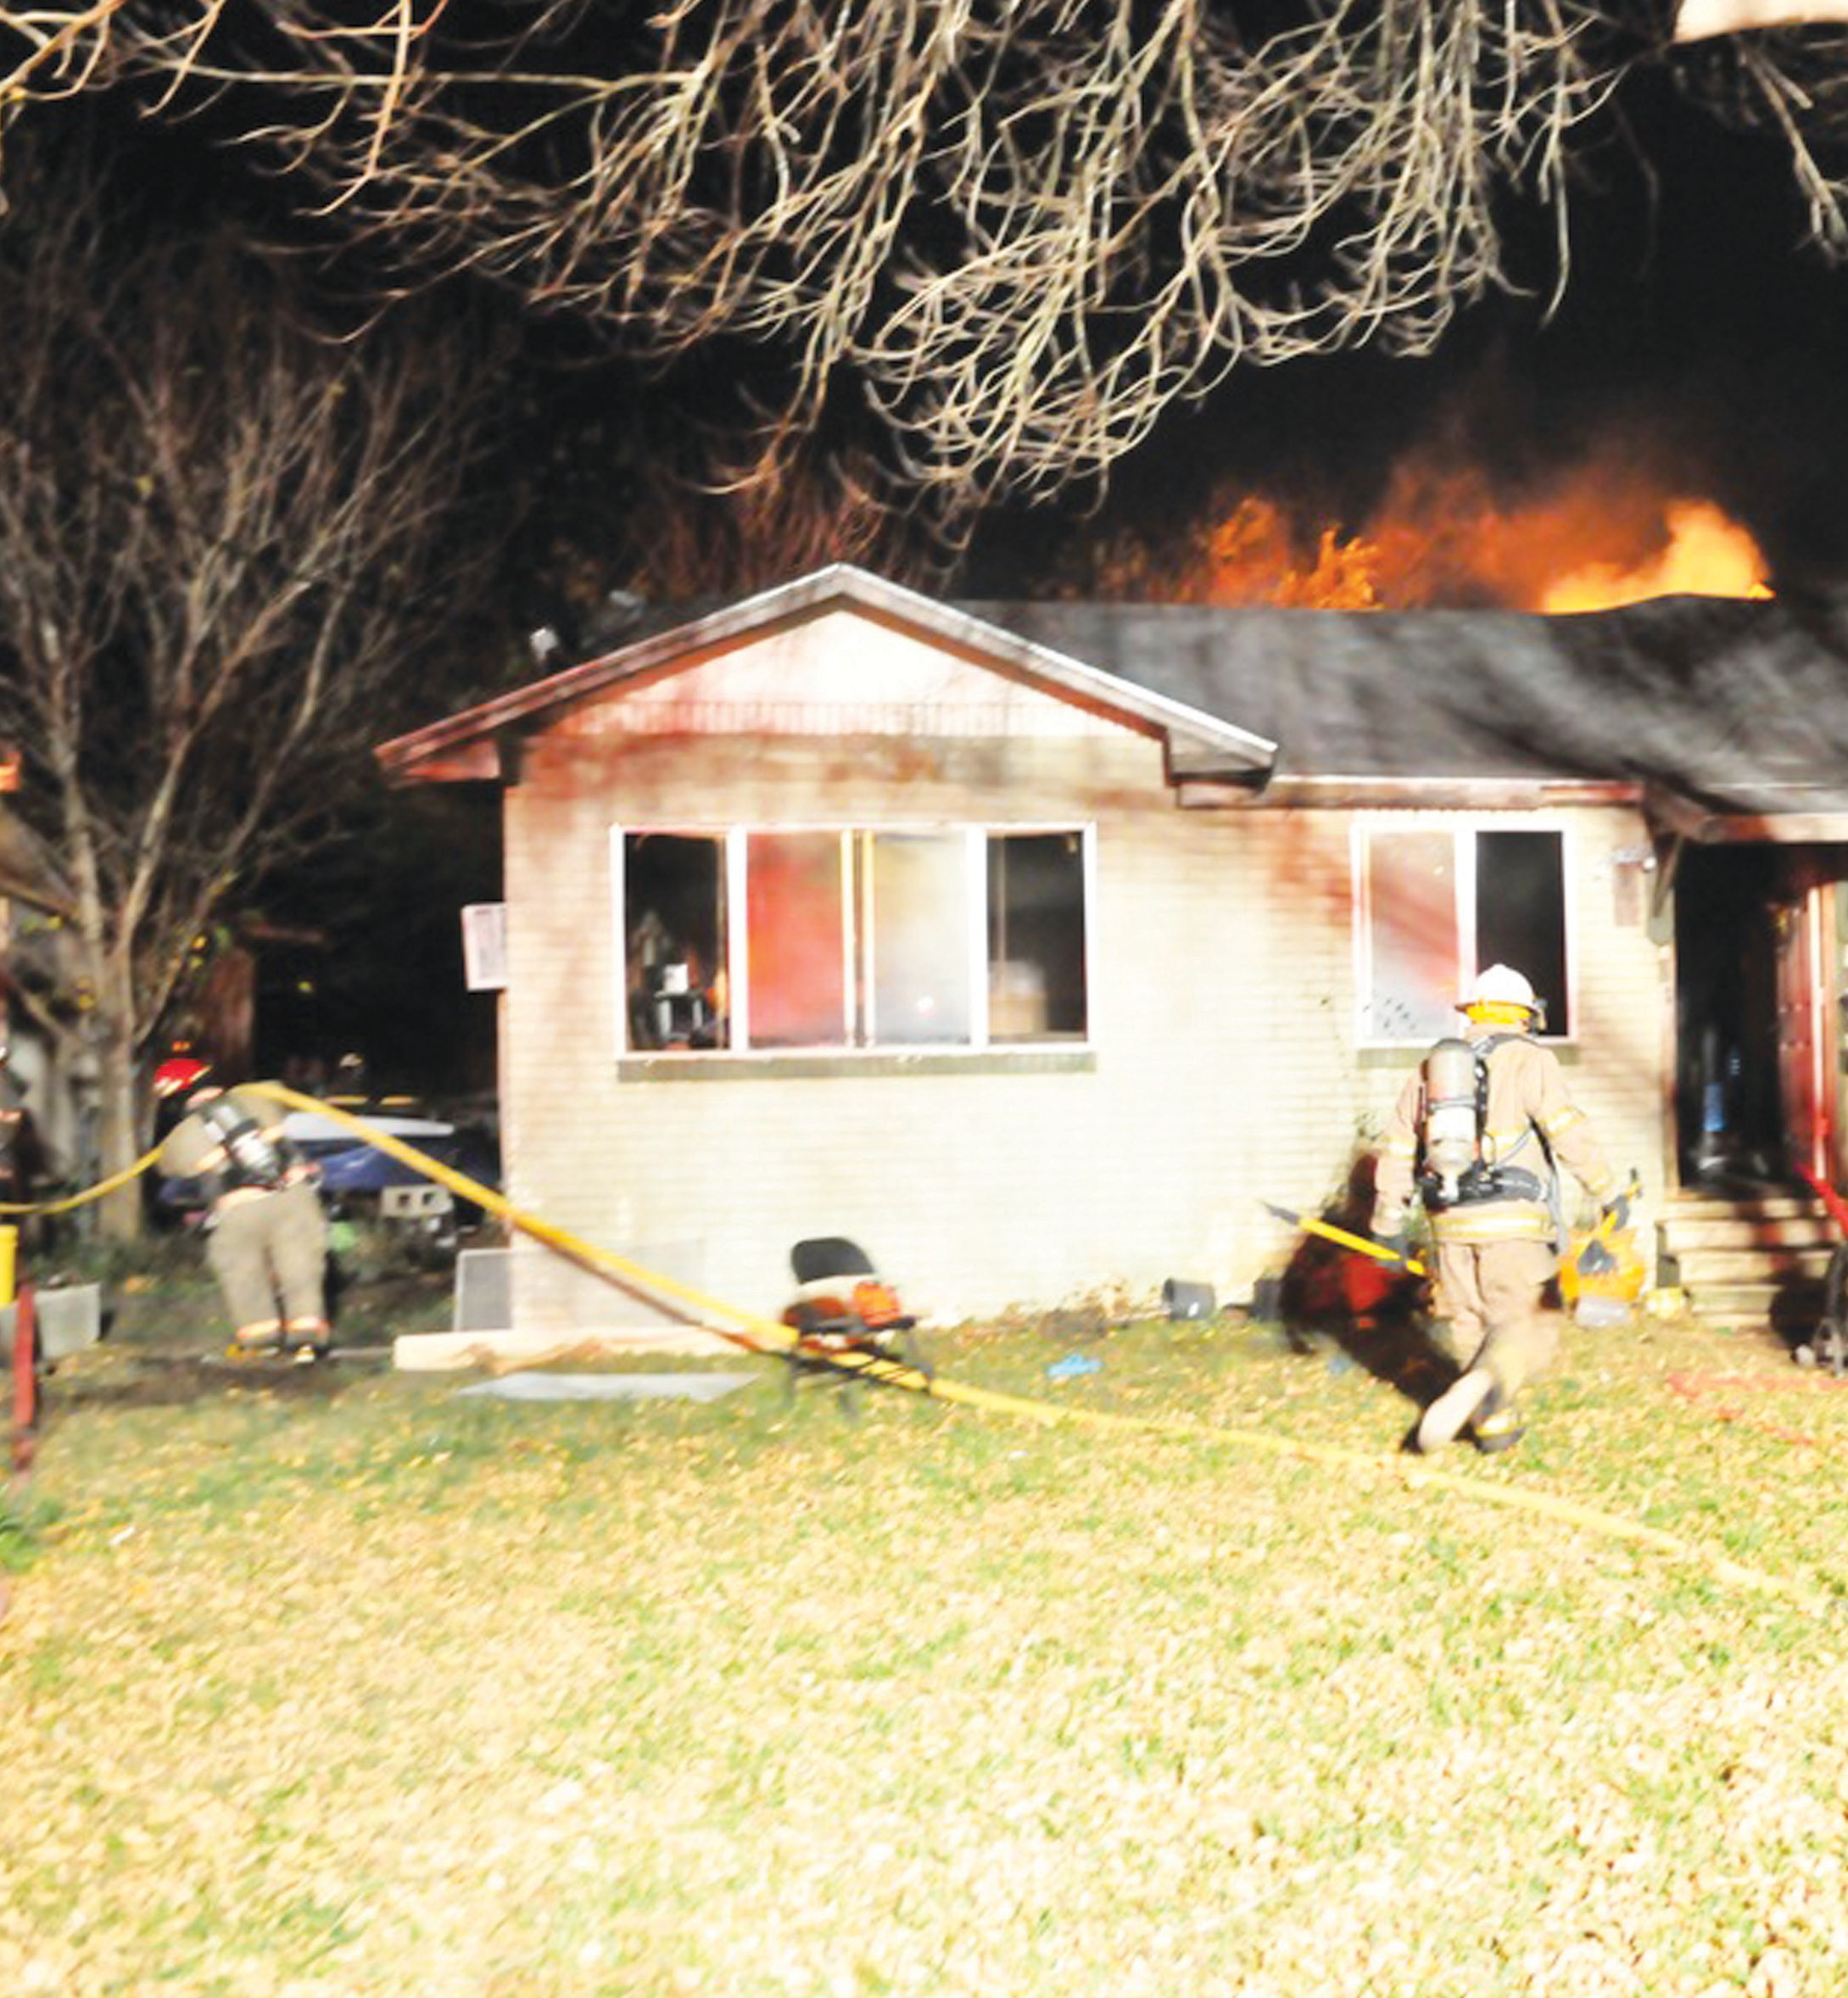 An accidental fire erupted from a space heater at a home near Brown and Olive Streets in Jourdanton on Thursday, December 27. According to Atascosa County Fire Marshal Chuck Garris, the fire caused about $25,000 in damage. Both the Jourdanton and Pleasanton Volunteer Fire Departments responded and helped to control the blaze.